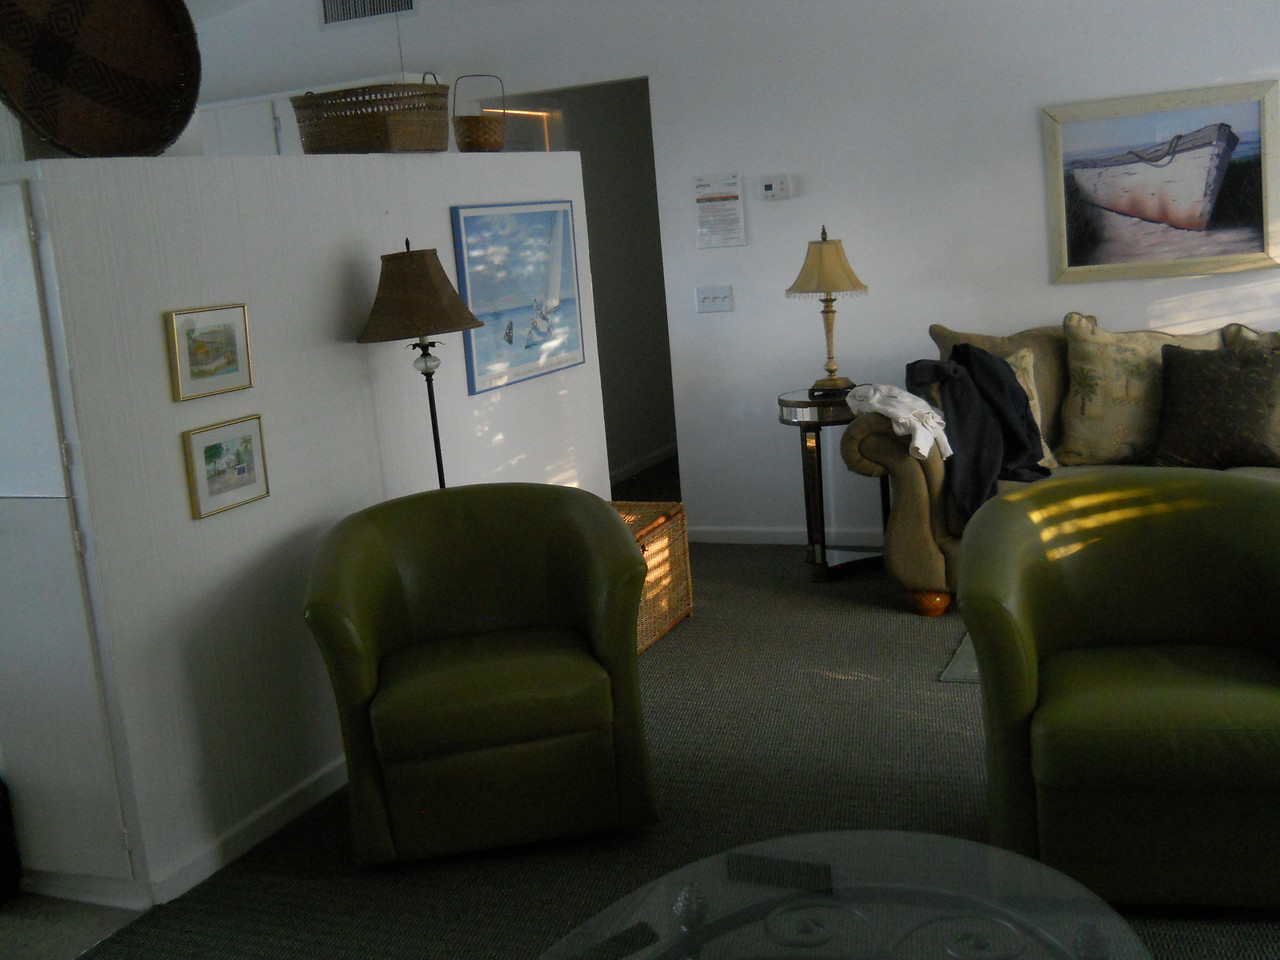 part of the living room area